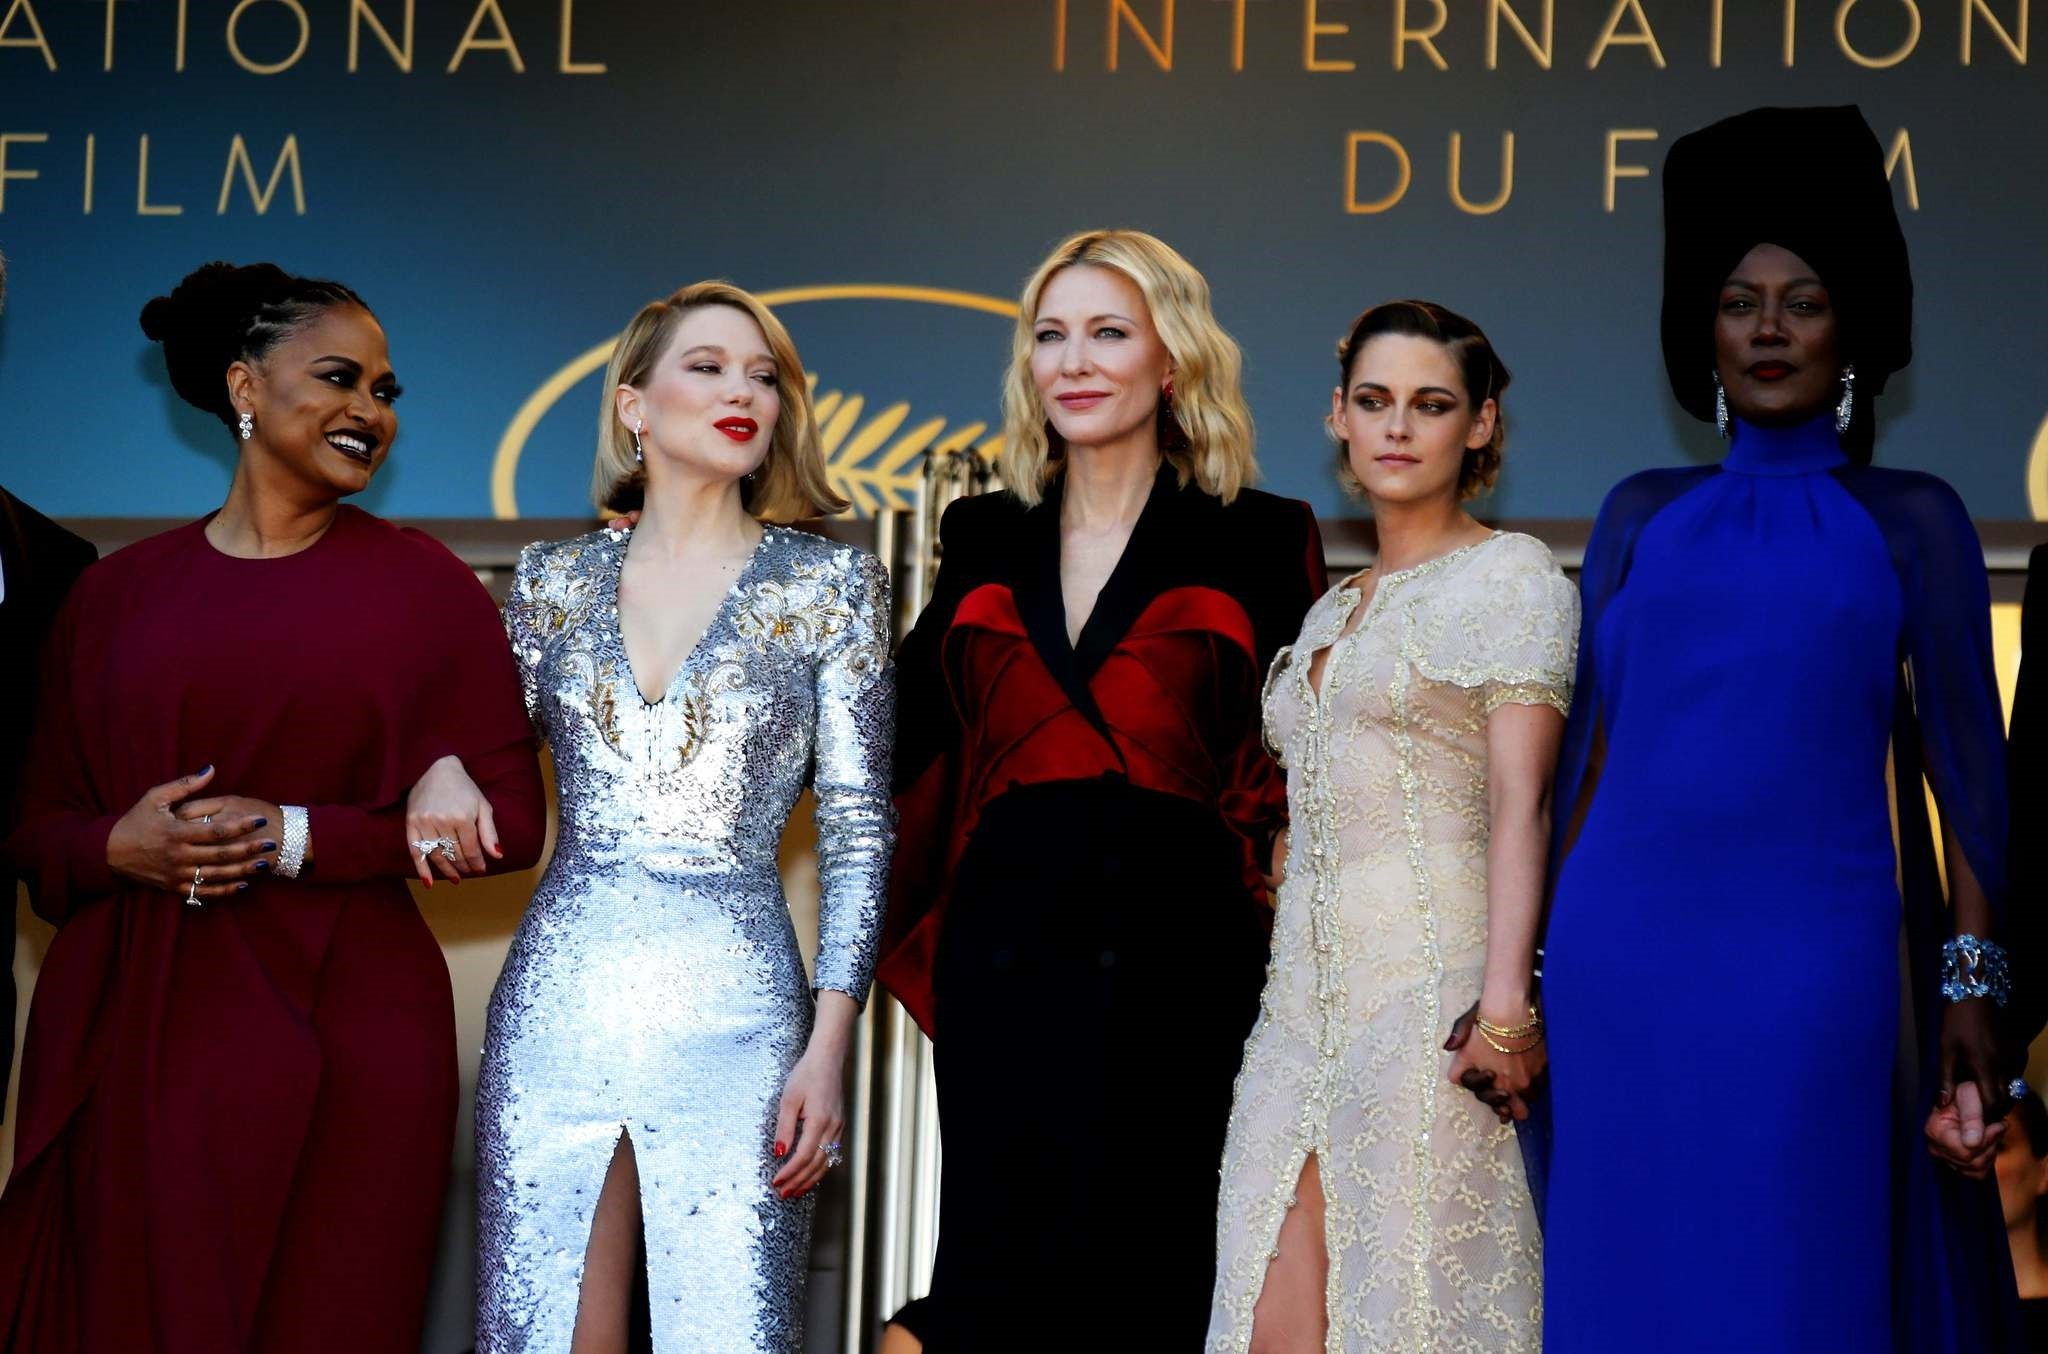 From left to right: Ava DuVerna, Lea Seydoux, Cate Blanchett, Kristen Stewart and Khadja Nin.